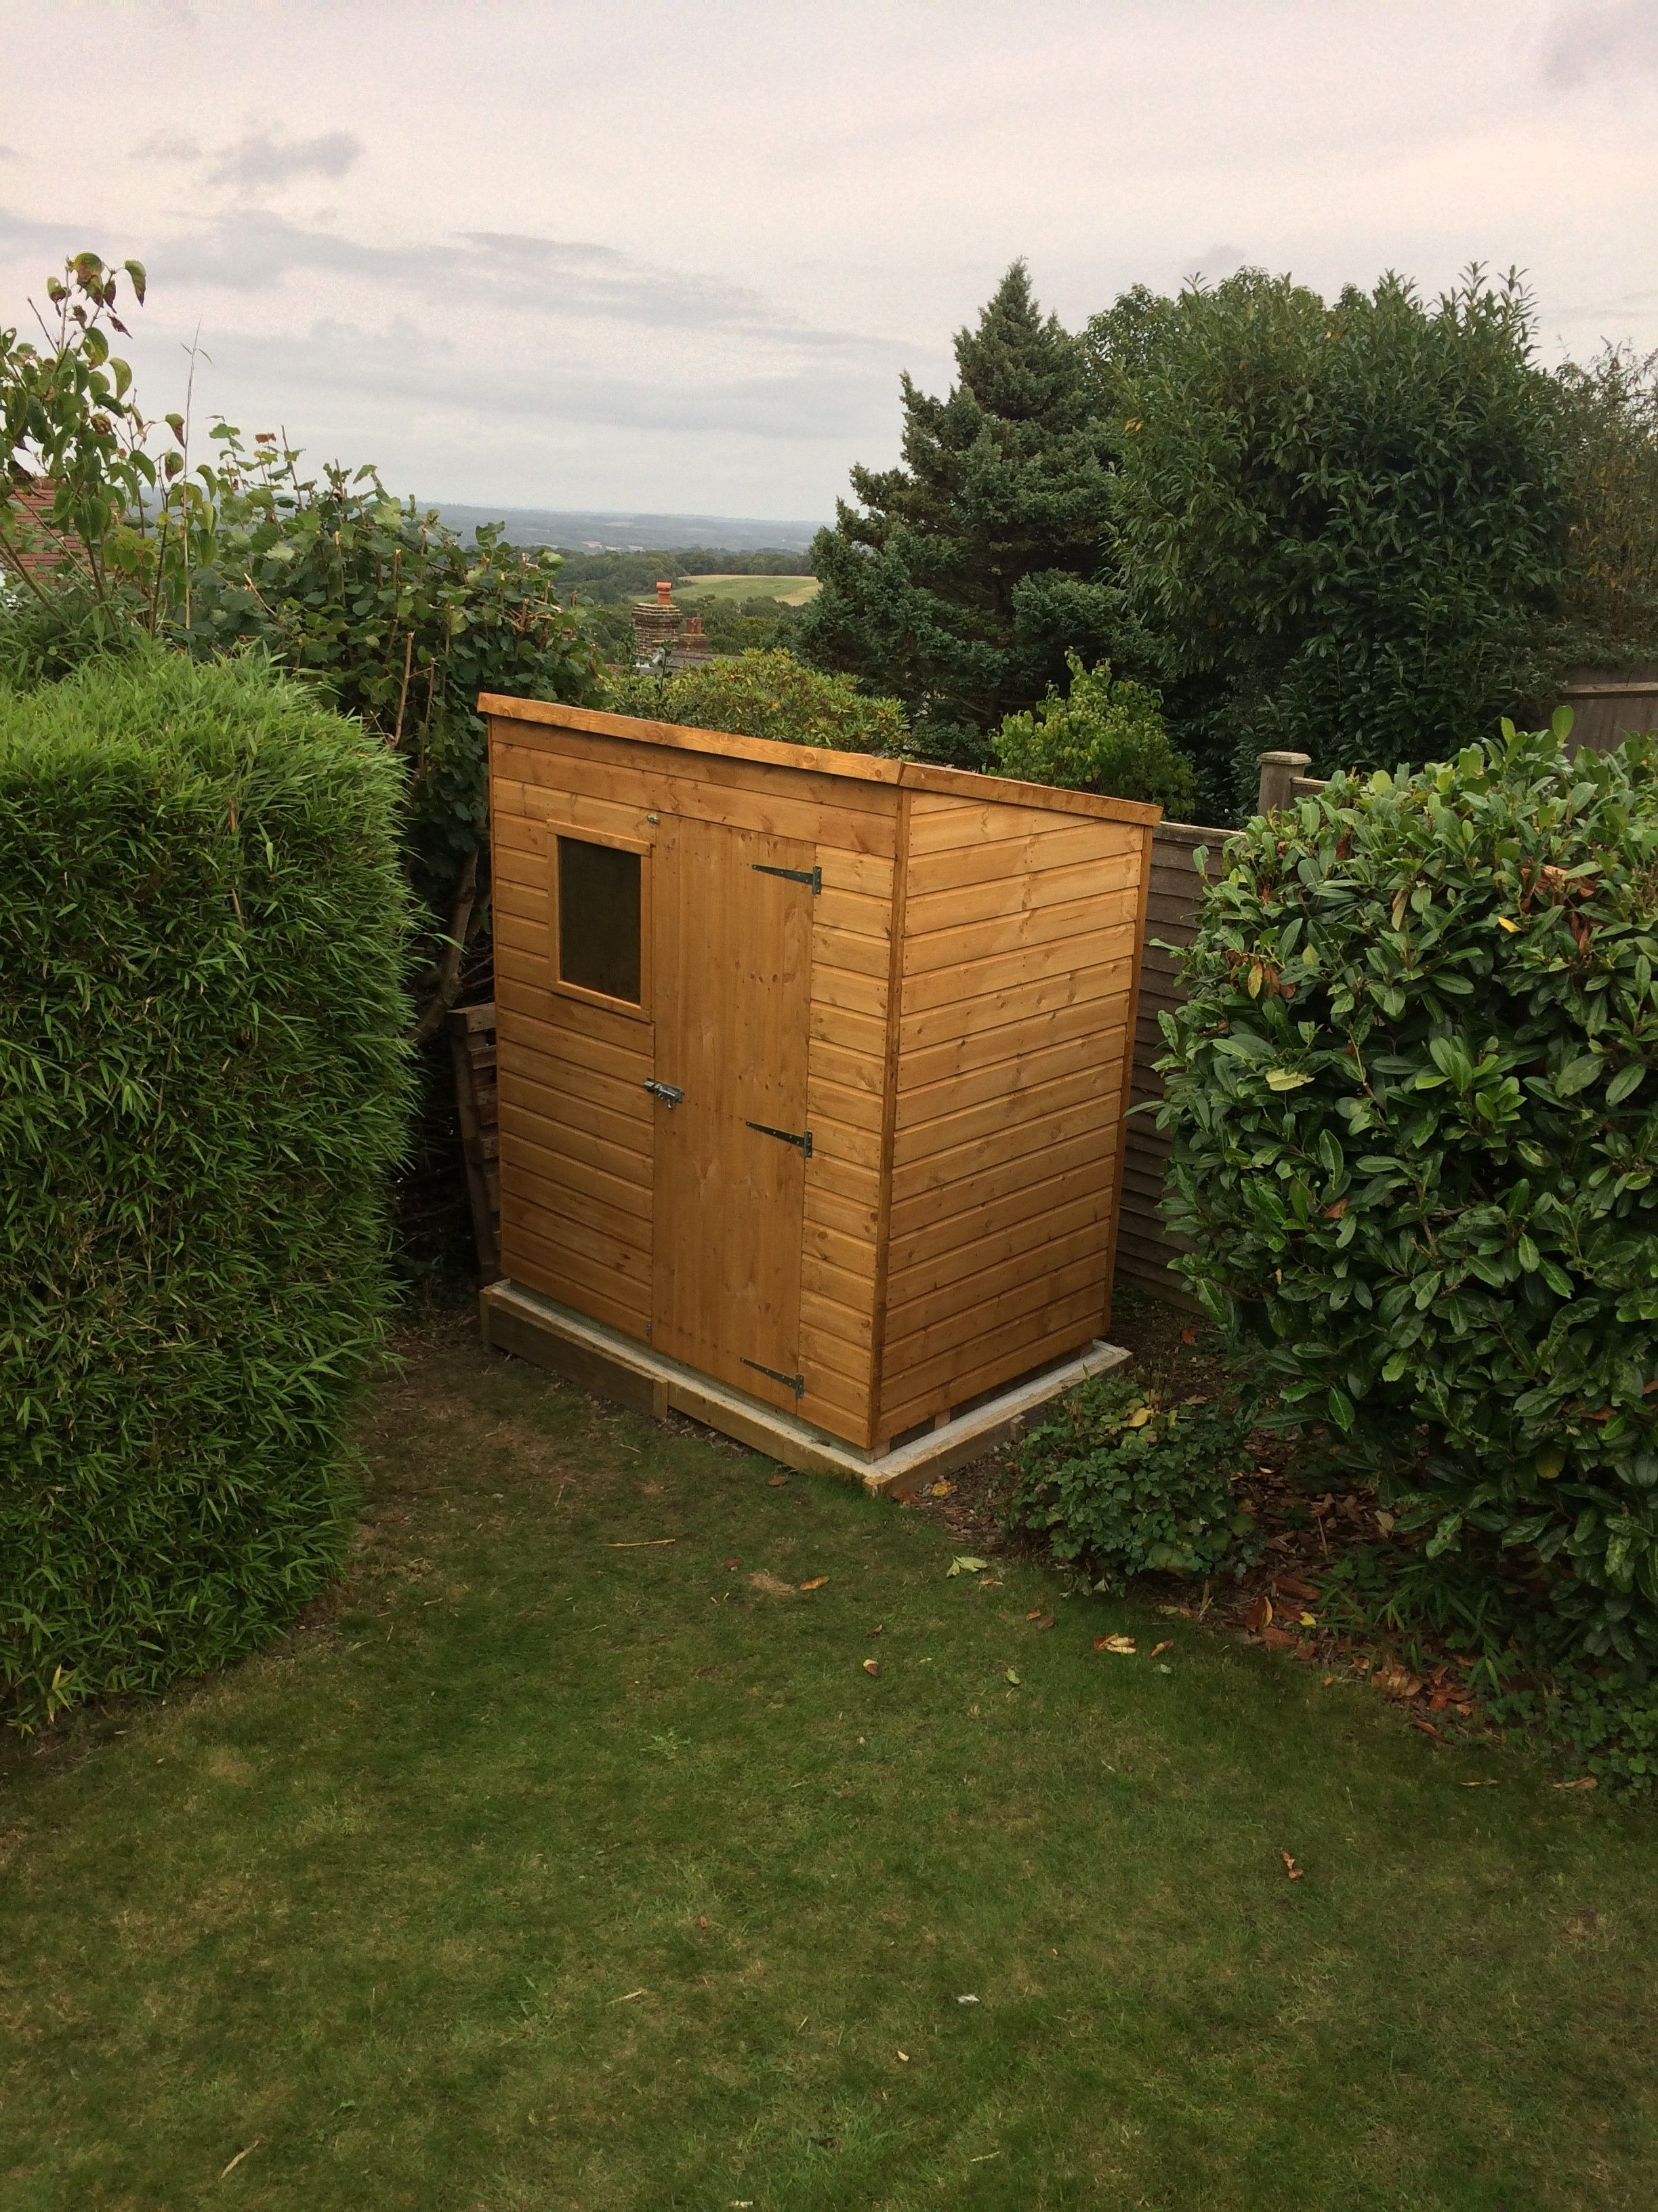 6 x 4 Waltons Tongue and Groove Pent Wooden Shed | Gardens